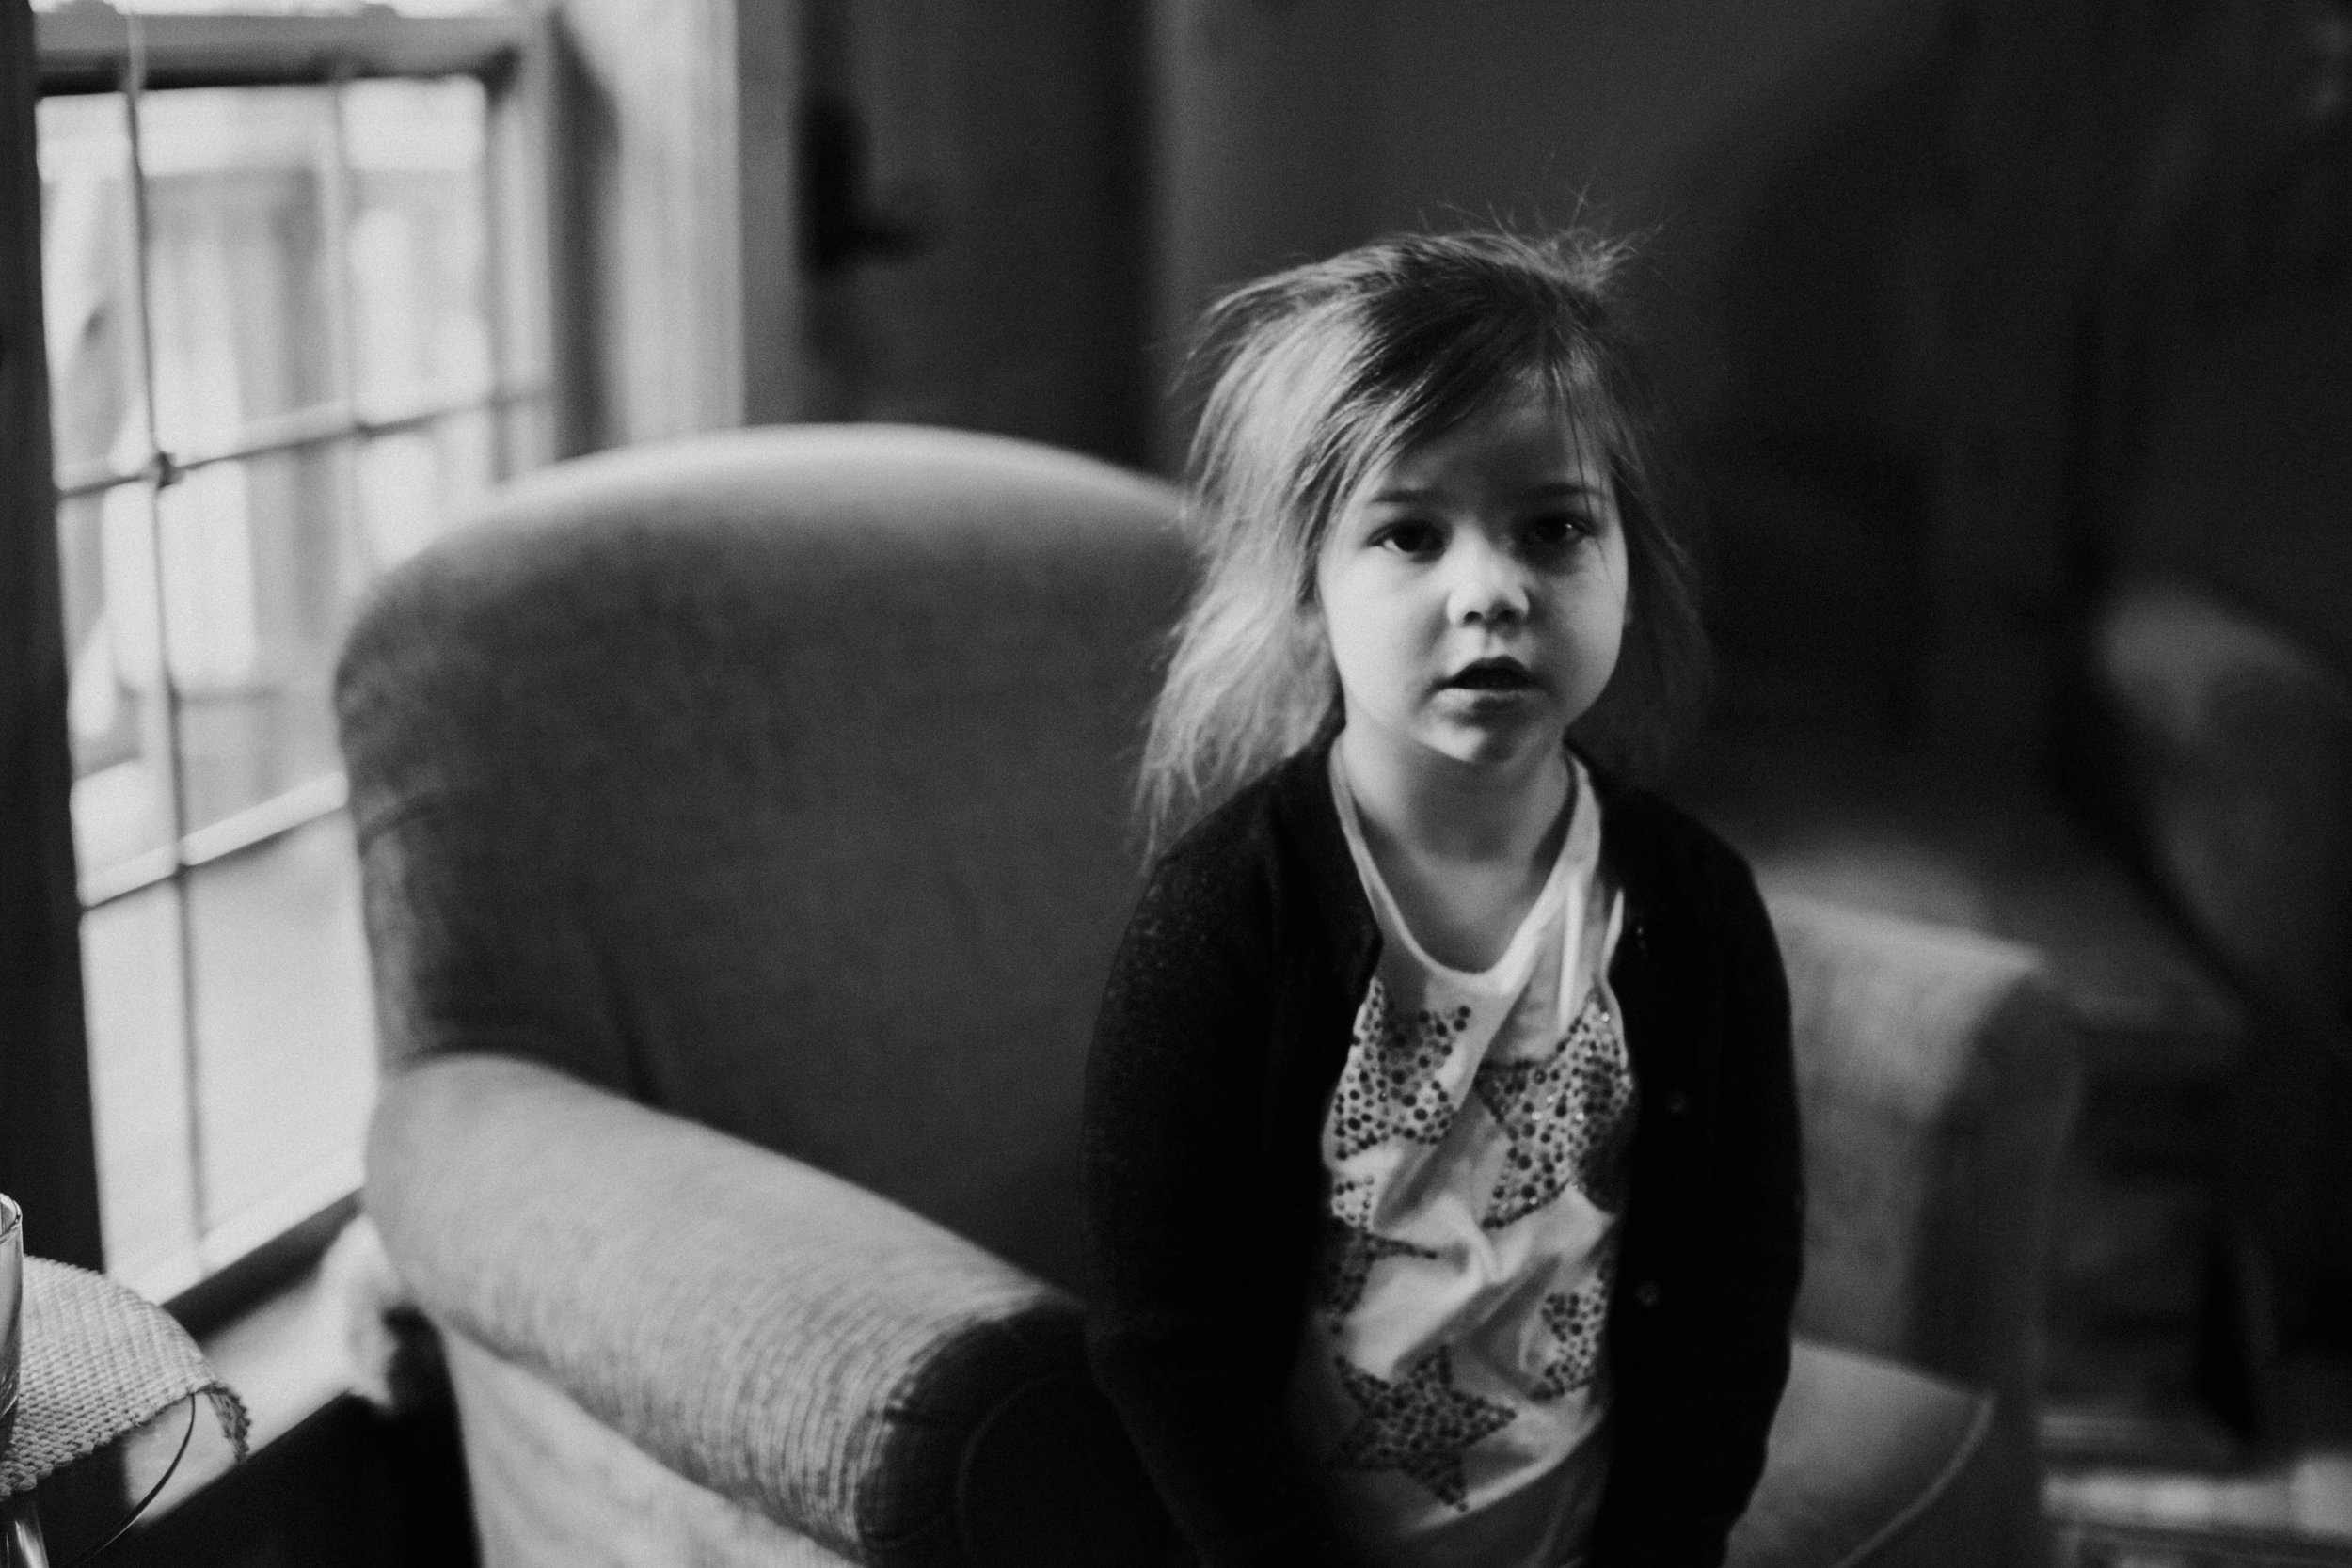 Christmas 2016 | Hannahill Photography | Branson, MO | Documentary Family Photography | Black and white portrait of my niece by the window